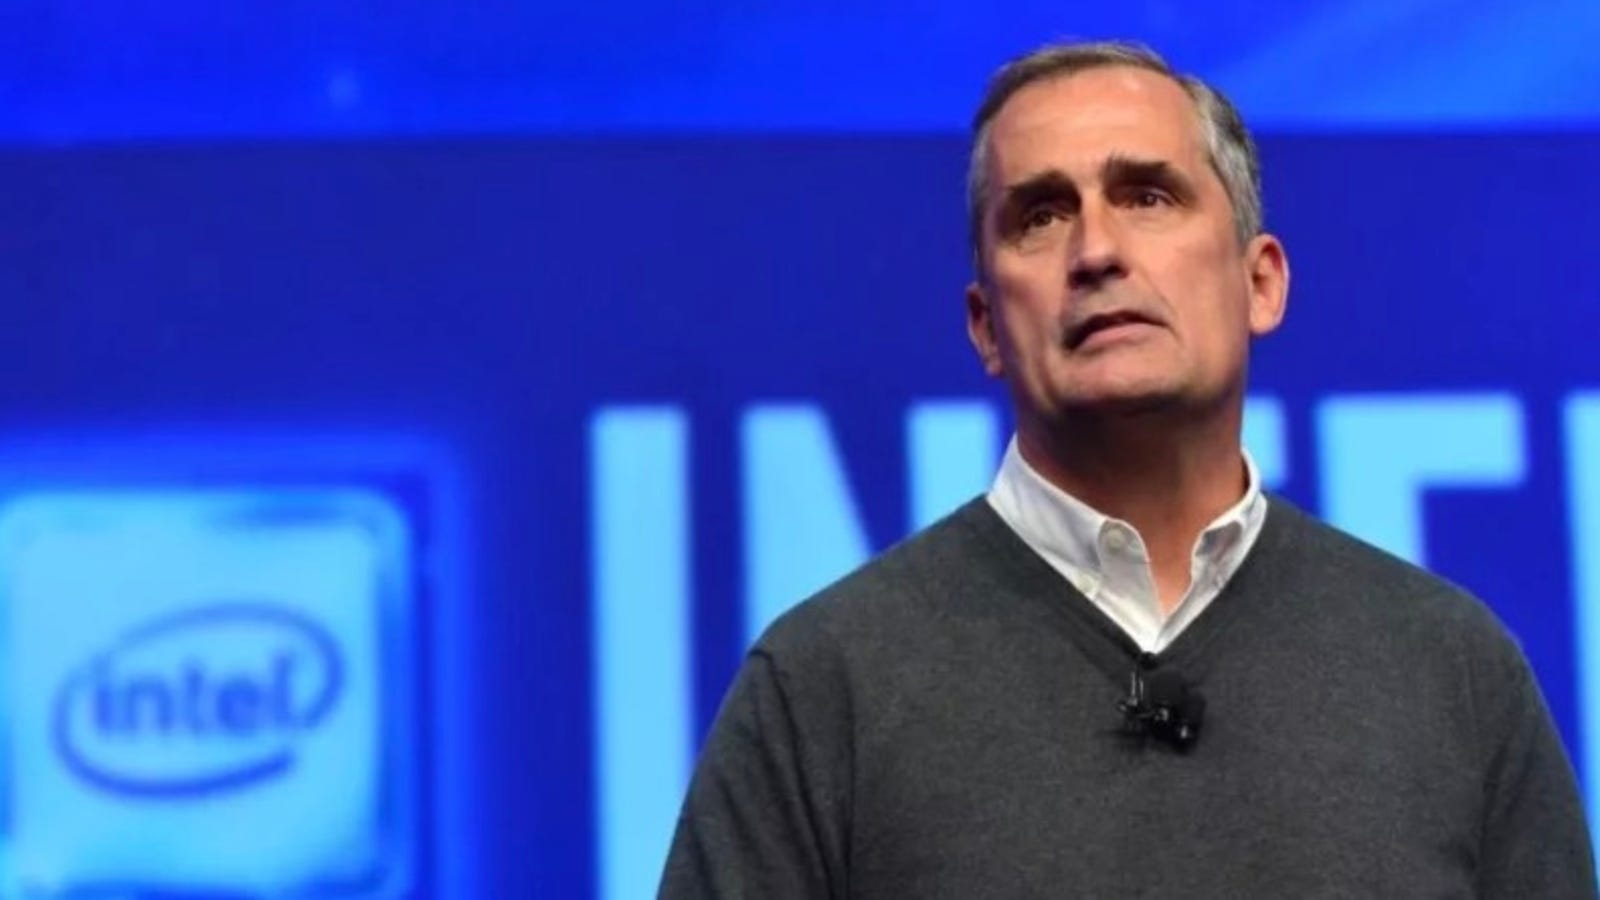 Intel CEO Brian Krzanich Quits After Investigation Into Total Boner Move